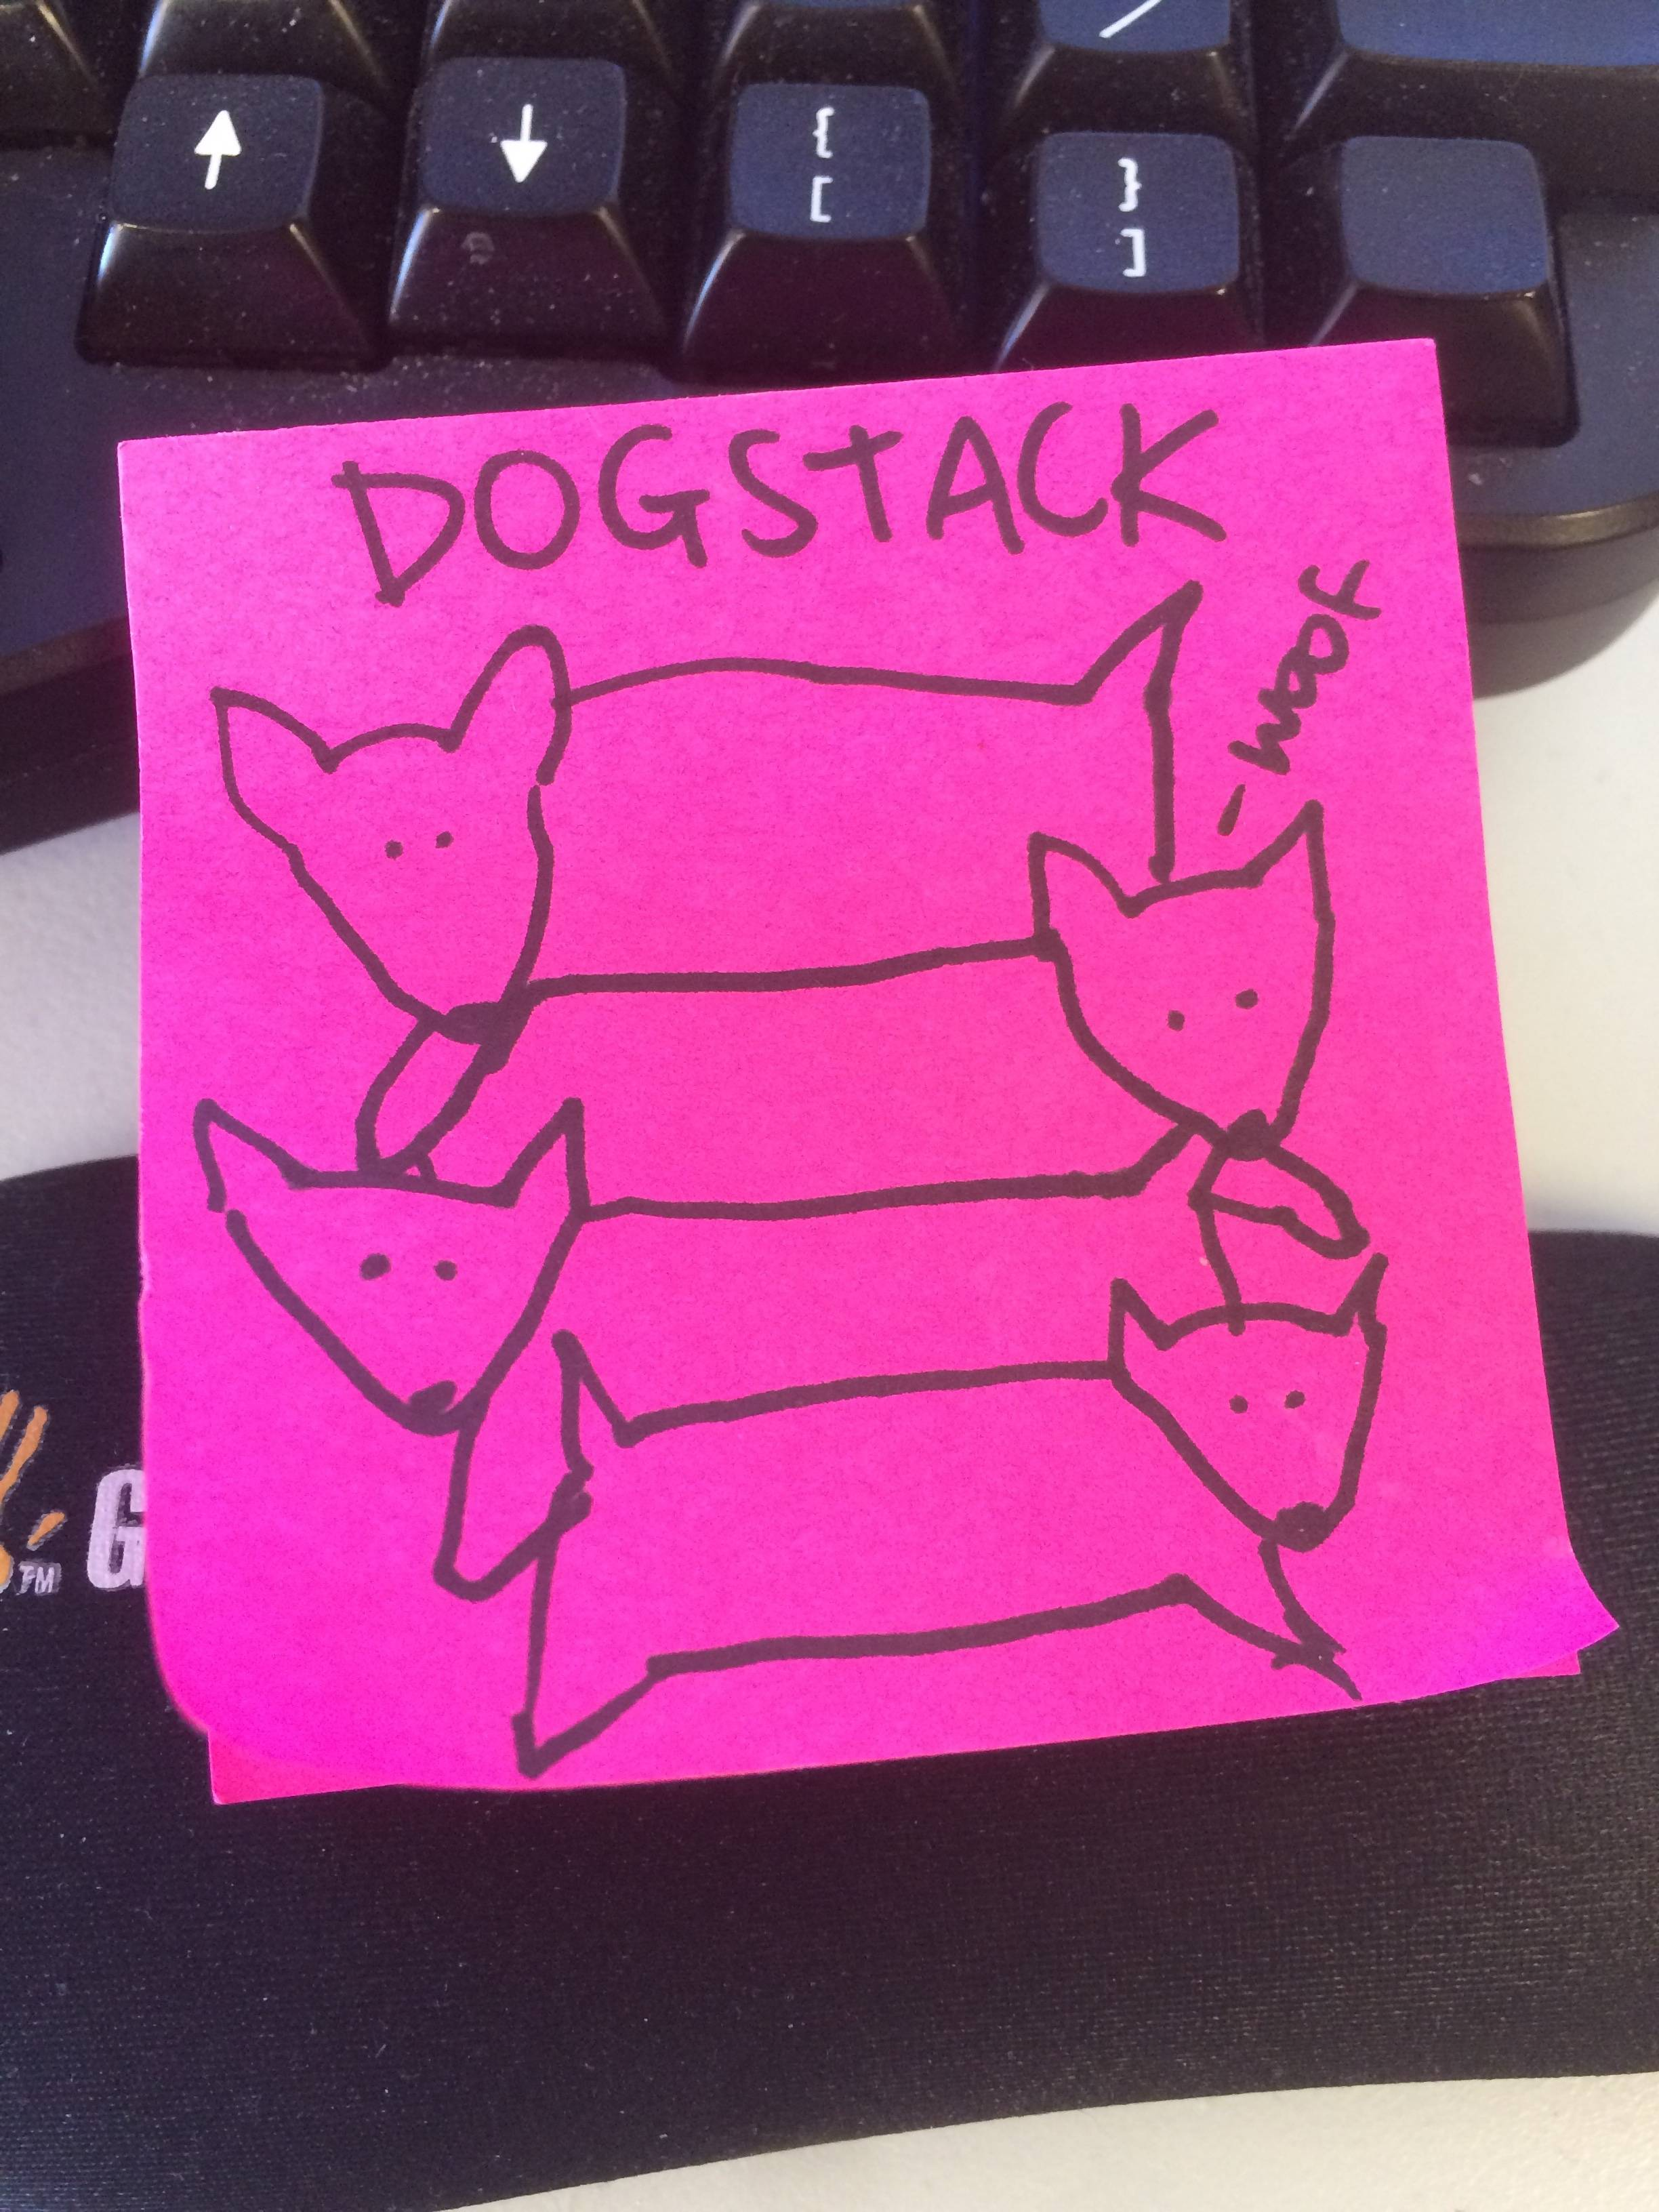 dogstack on a post-it note